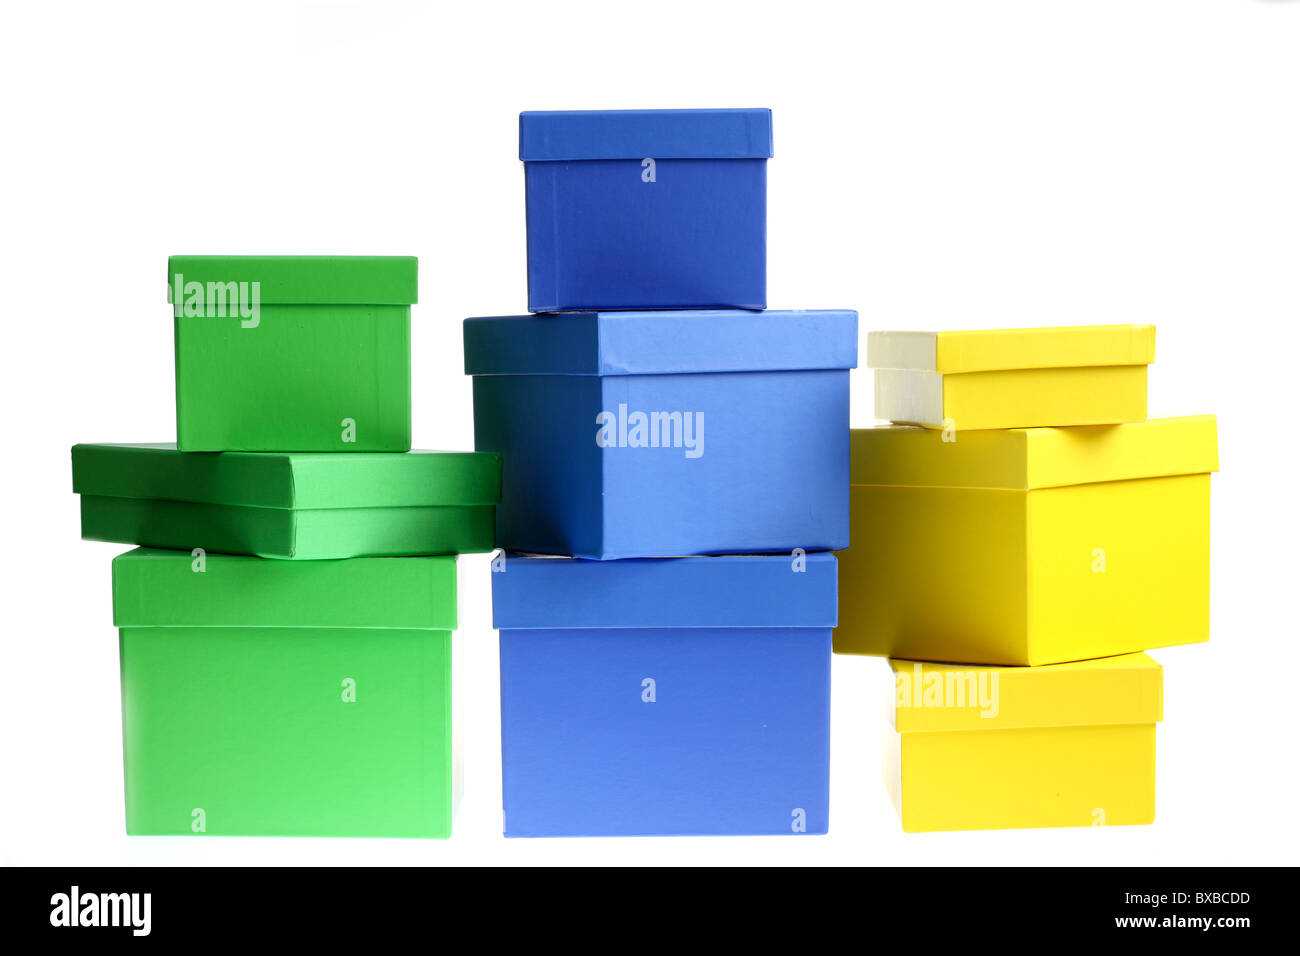 Cardboard boxes, for gifts, presents, valuables, archiving, storage of nice things. - Stock Image